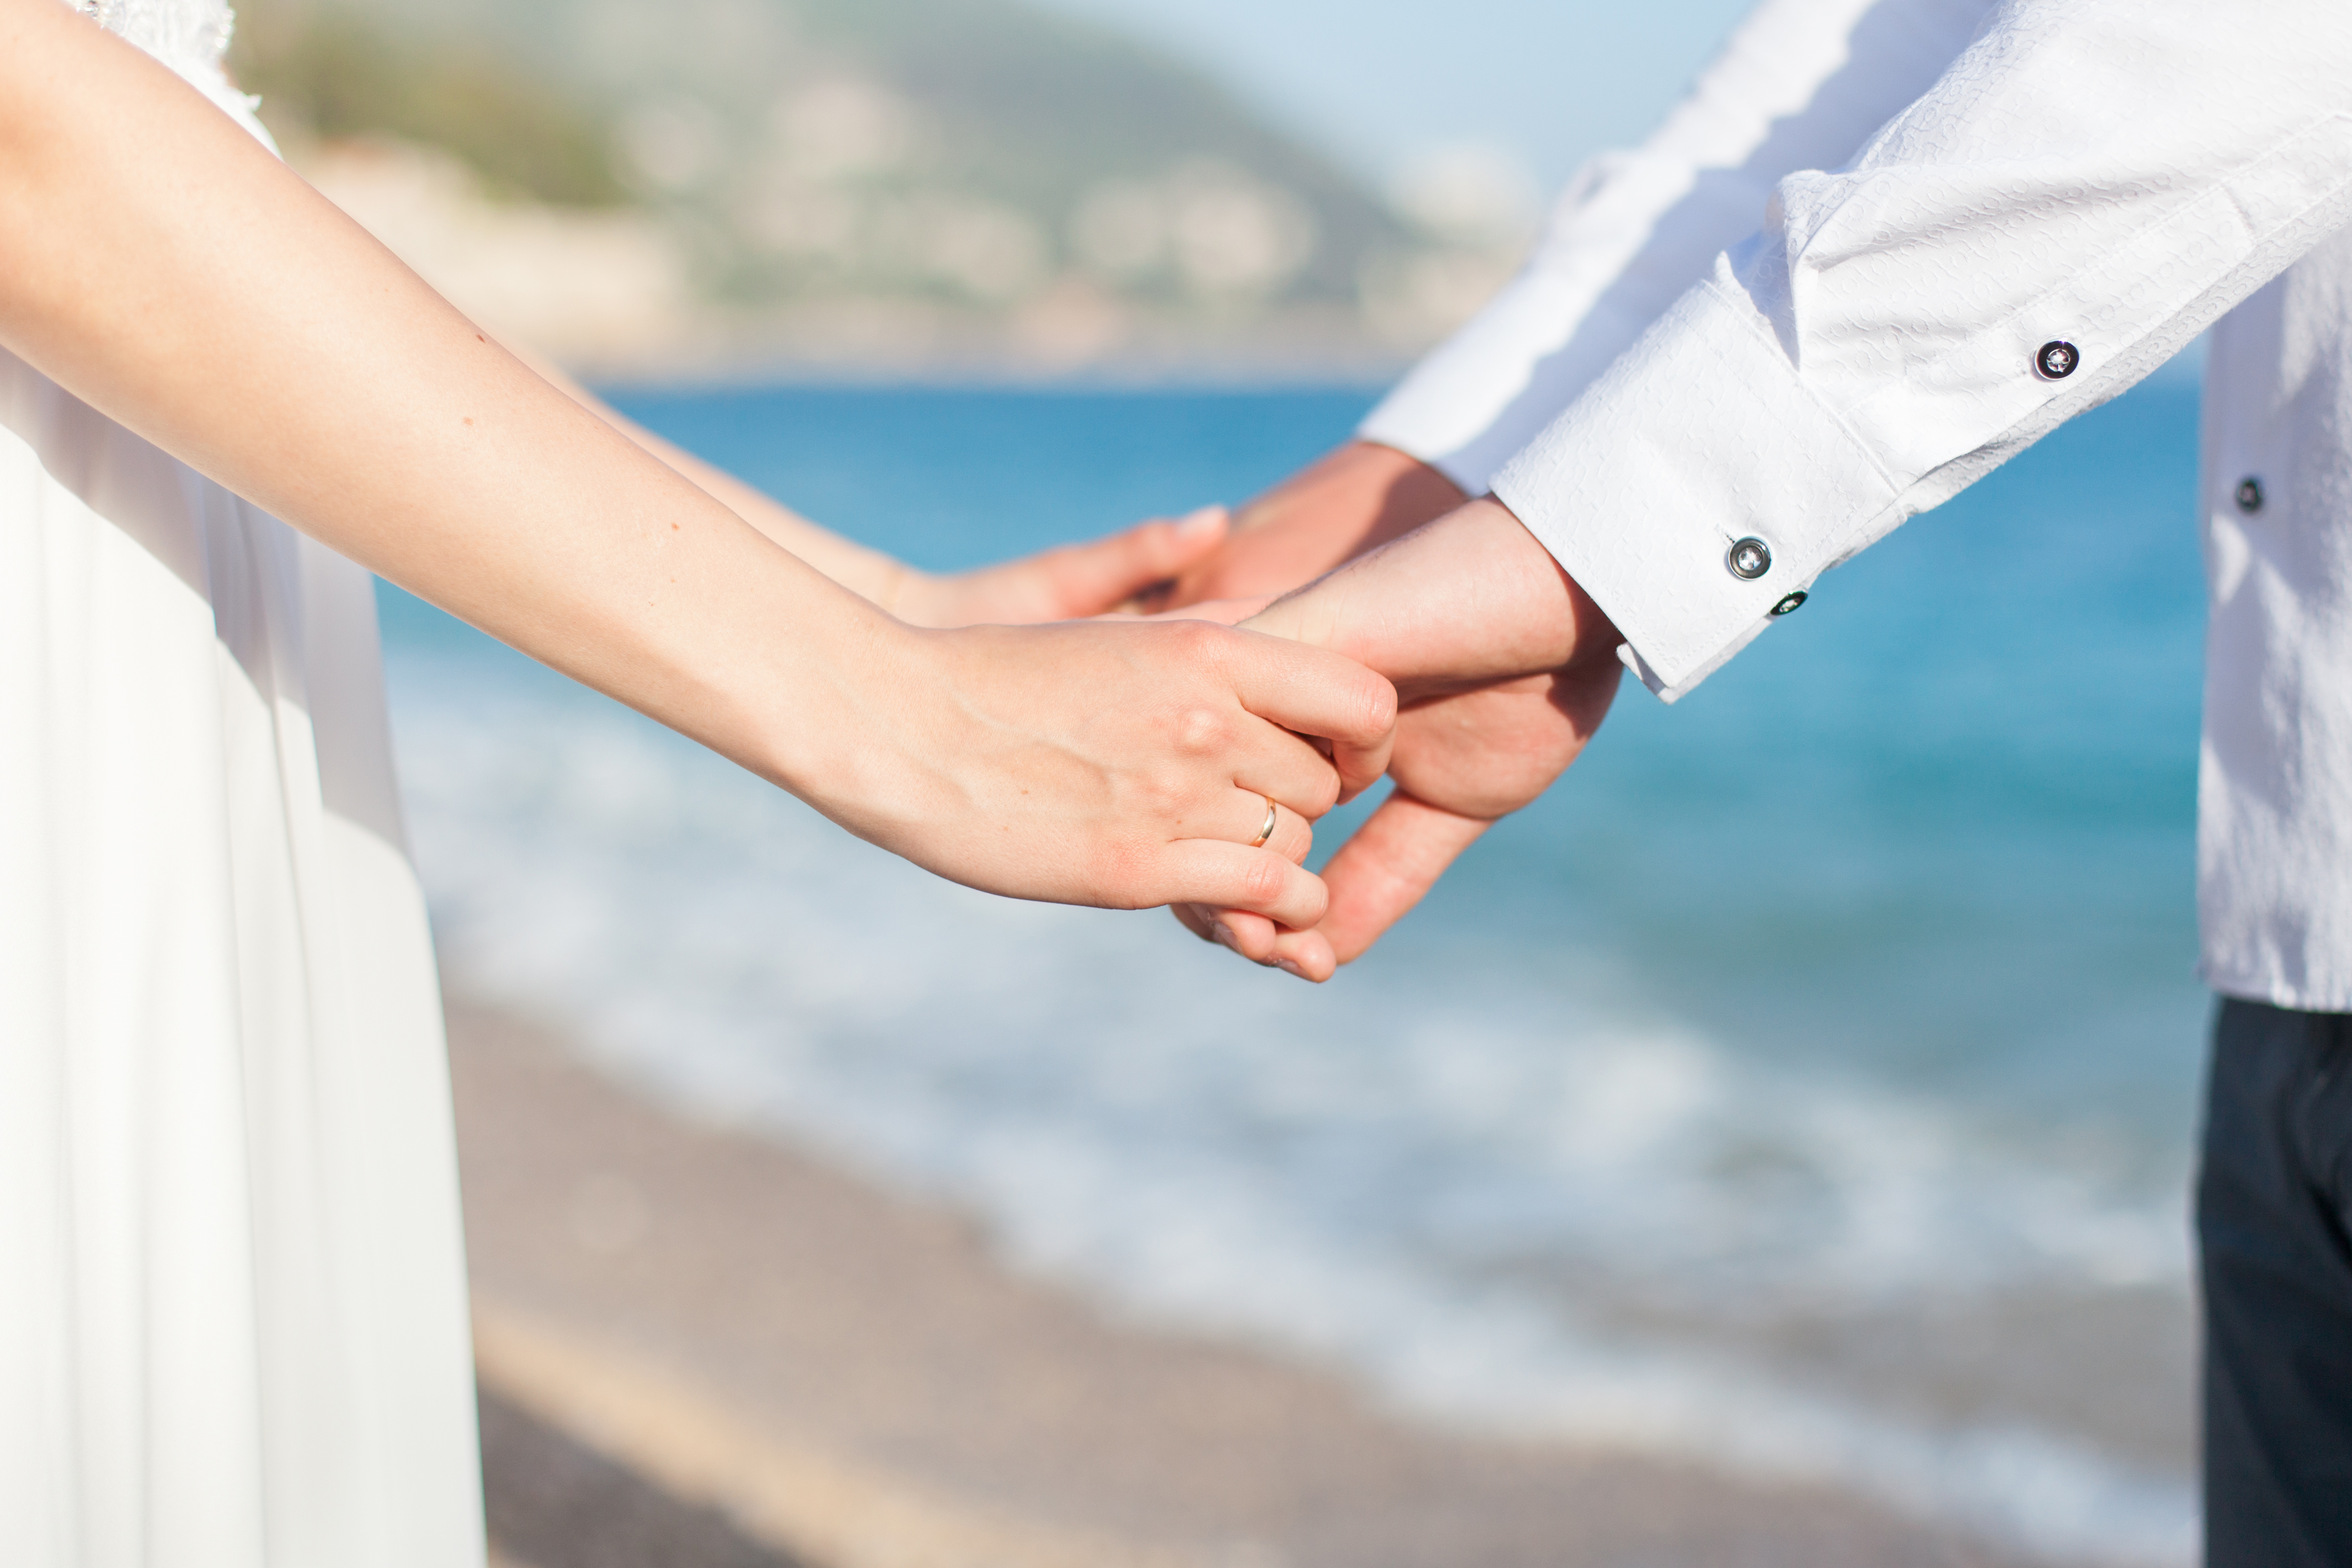 bigstock-Bride-And-Groom-Hold-Hands-Wit-242202340